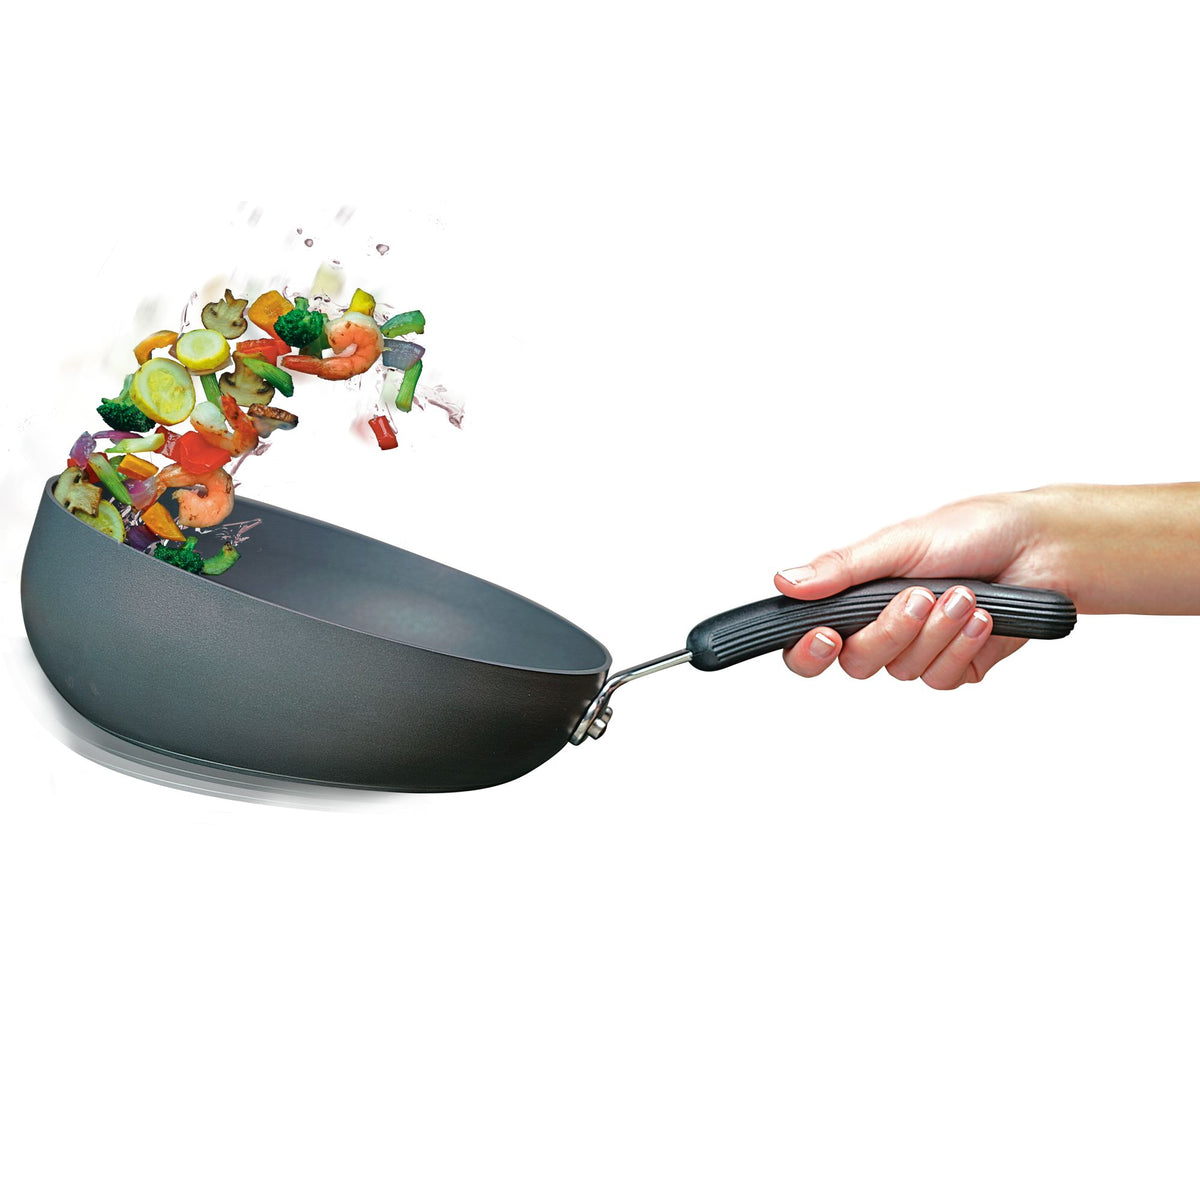 Classic 10.5-Inch Toss-and-Turn Stir Fry Pan